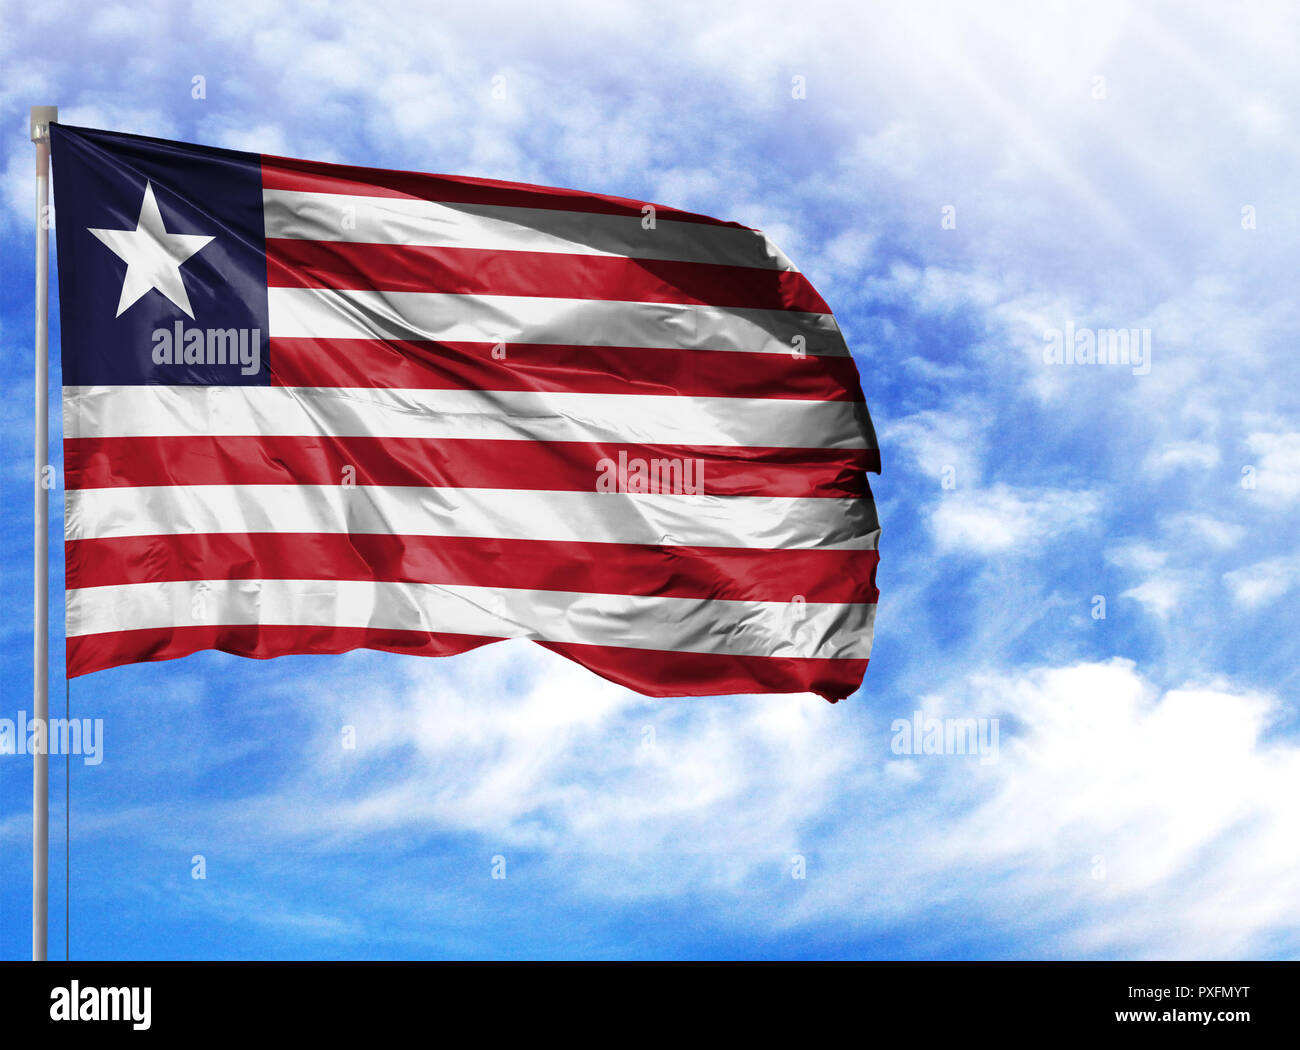 National flag of Liberia on a flagpole in front of blue sky. - Stock Image